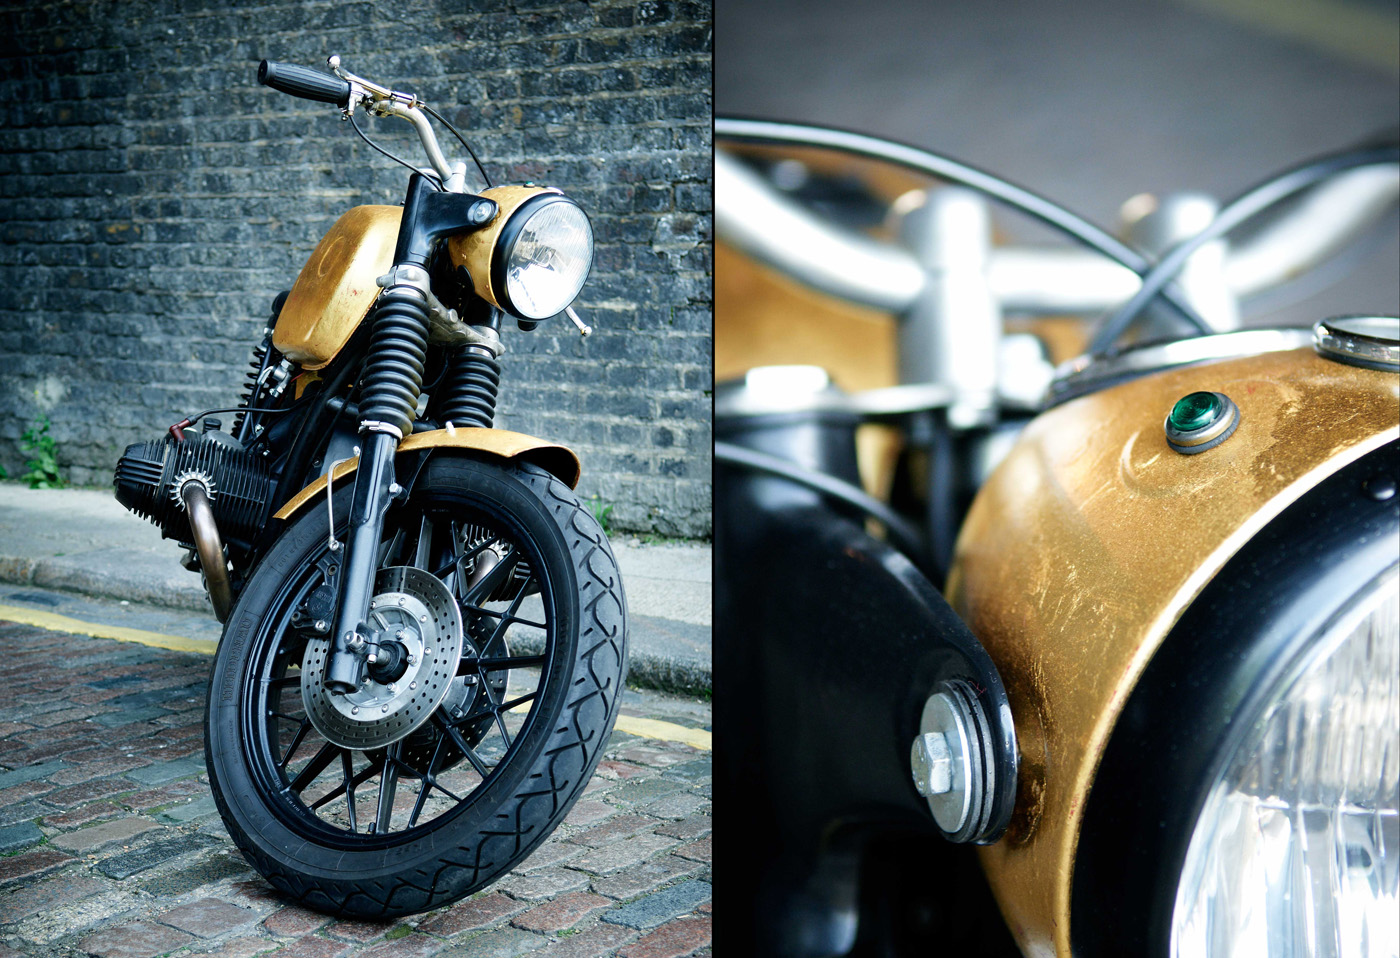 Real Gold for Untitled Motorcycles BMW R80/7 - autoevolution